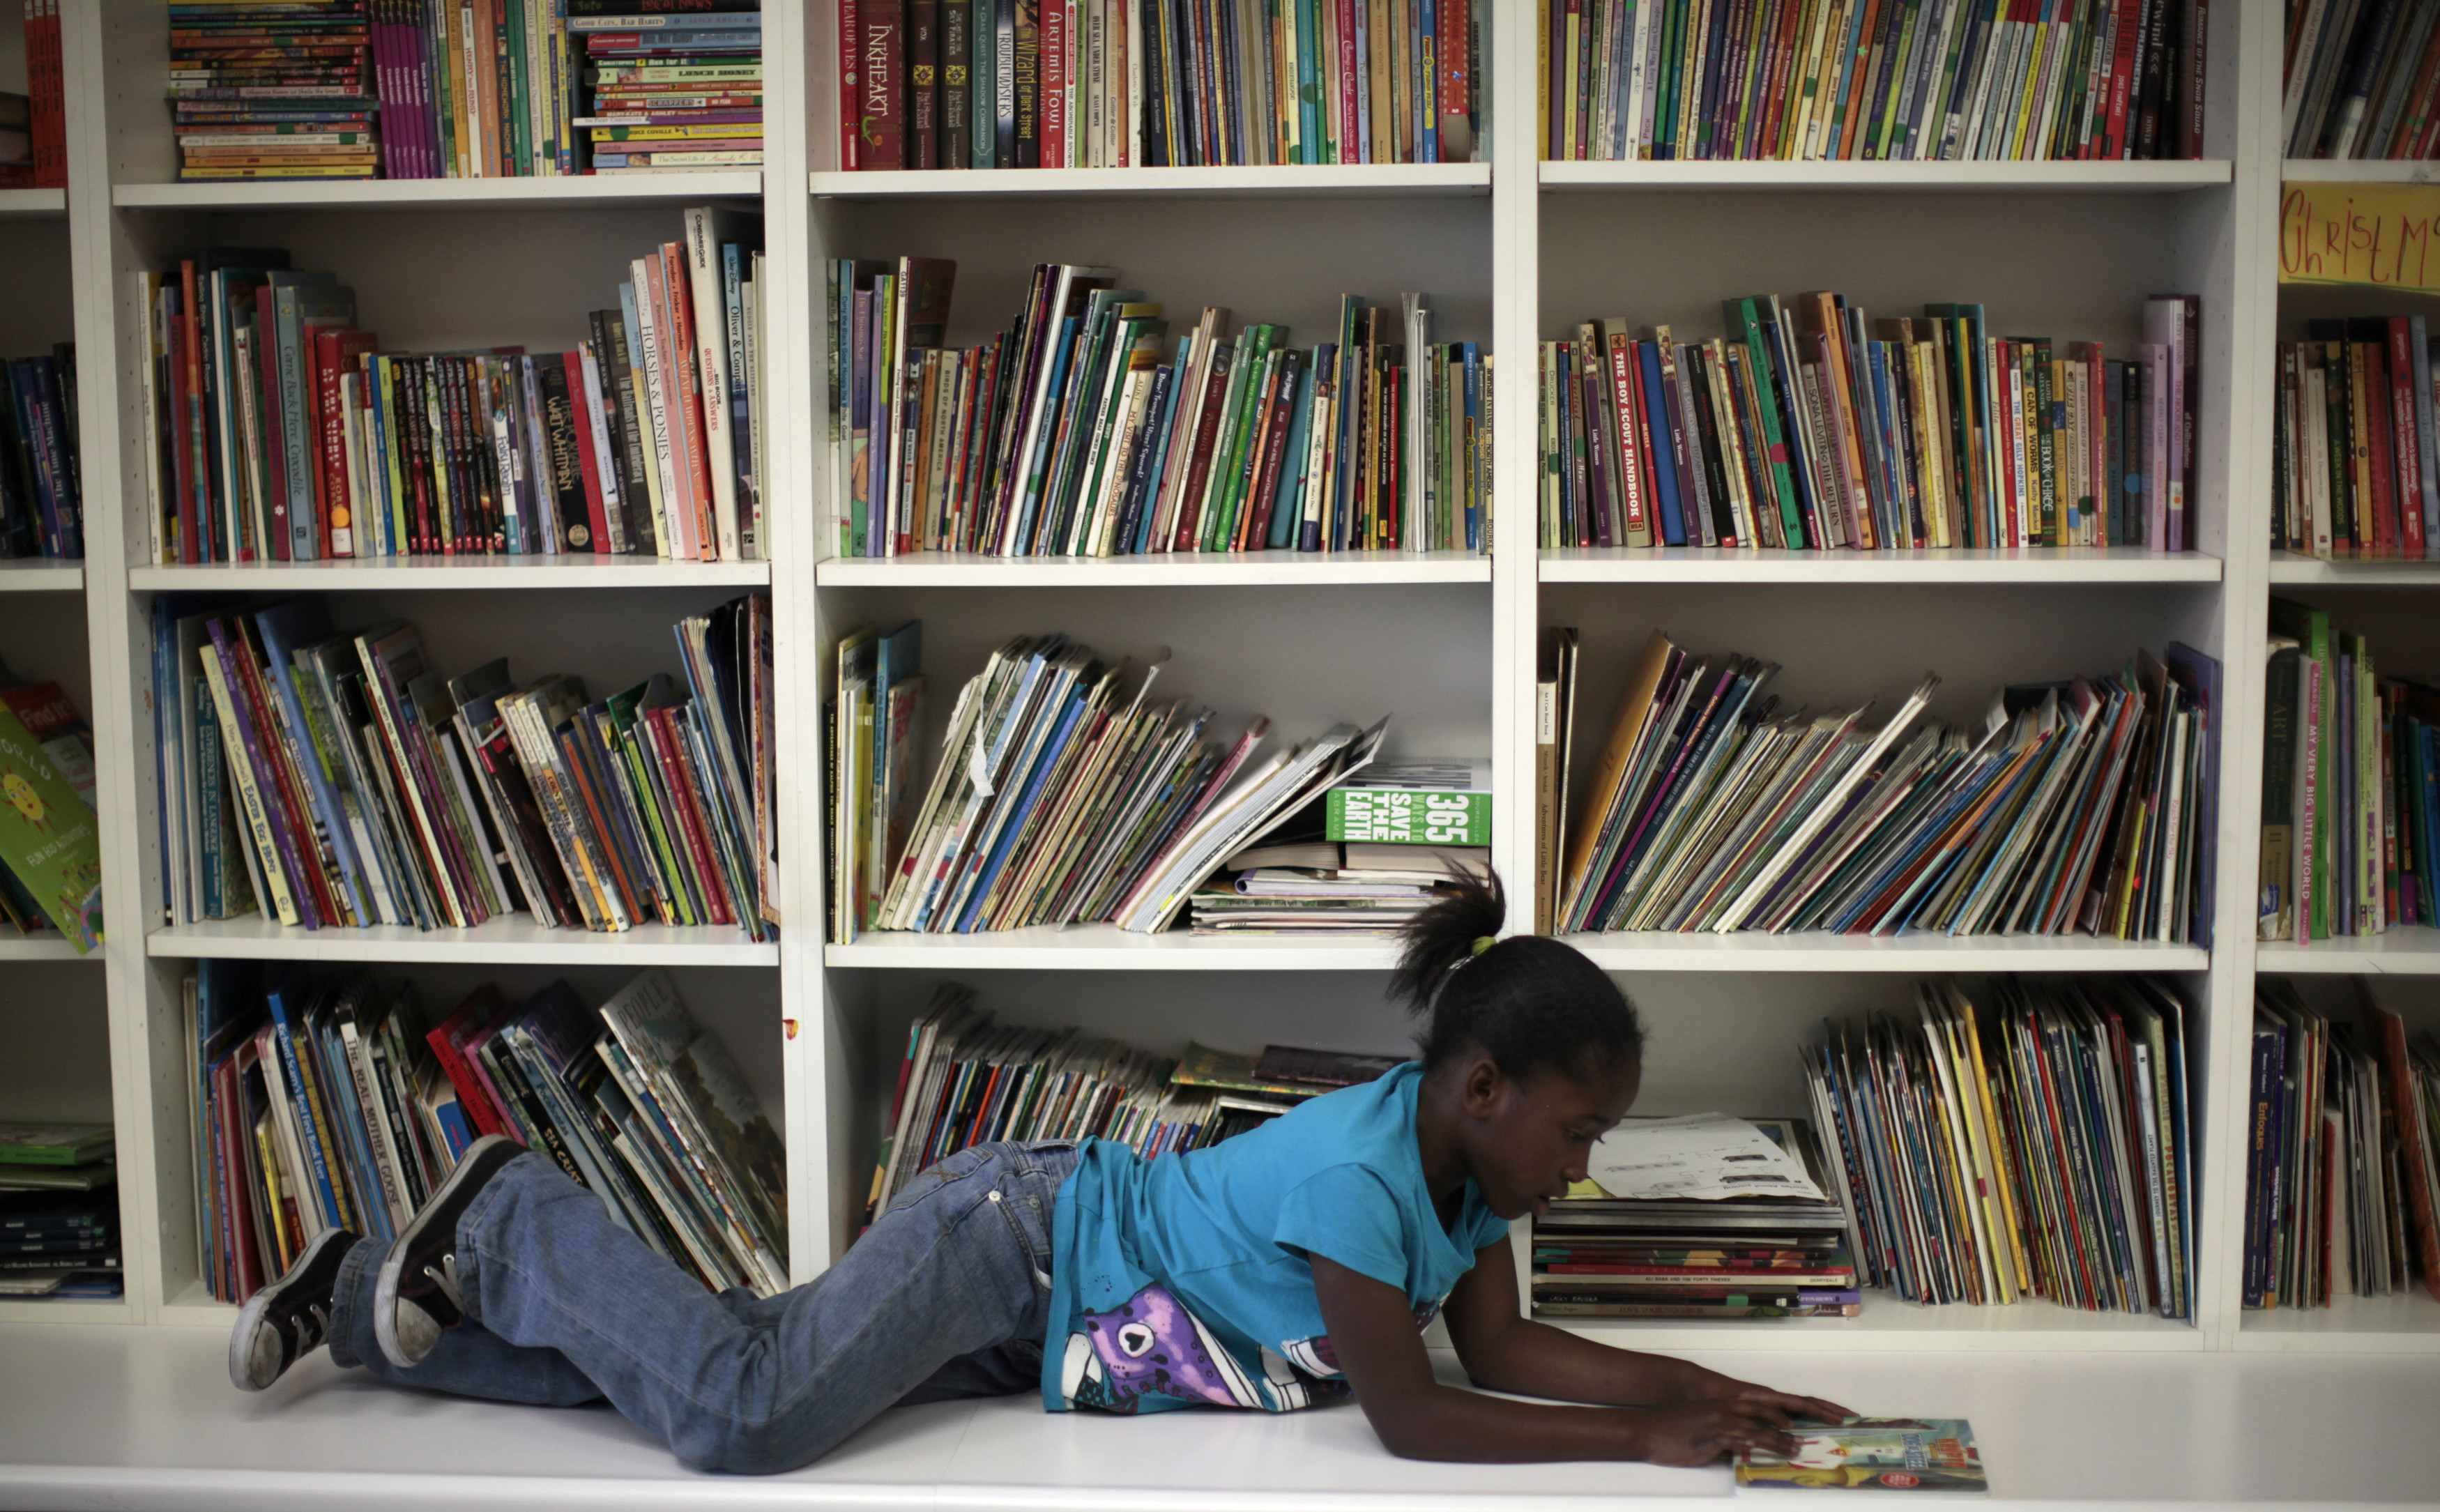 Iana Williams, 8, who is homeless, reads a book at a School on Wheels' after-school program in Los Angeles, February 9, 2012. School on Wheels provides tutoring and educational mentoring to homeless children. A recent report by the National Alliance to End Homelessness found that California's population of homeless families increased by five percent between 2009 and 2011. It is estimated that there are over 300,000 homeless children in California.  REUTERS/Lucy Nicholson (UNITED STATES - Tags: EDUCATION SOCIETY) - RTR2XKVW